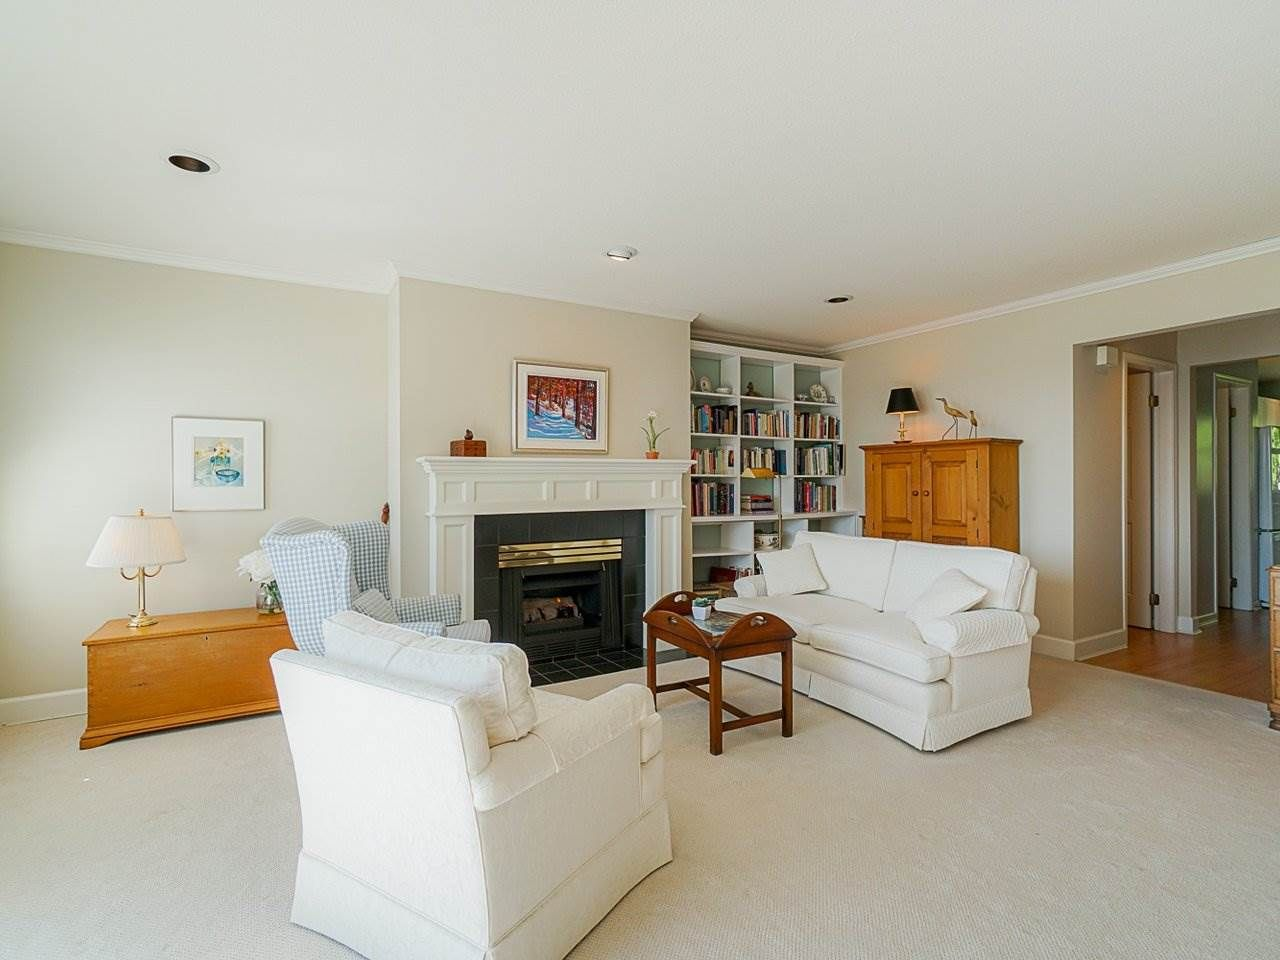 """Photo 21: Photos: 4 235 E KEITH Road in North Vancouver: Lower Lonsdale Townhouse for sale in """"Carriage Hill"""" : MLS®# R2471169"""